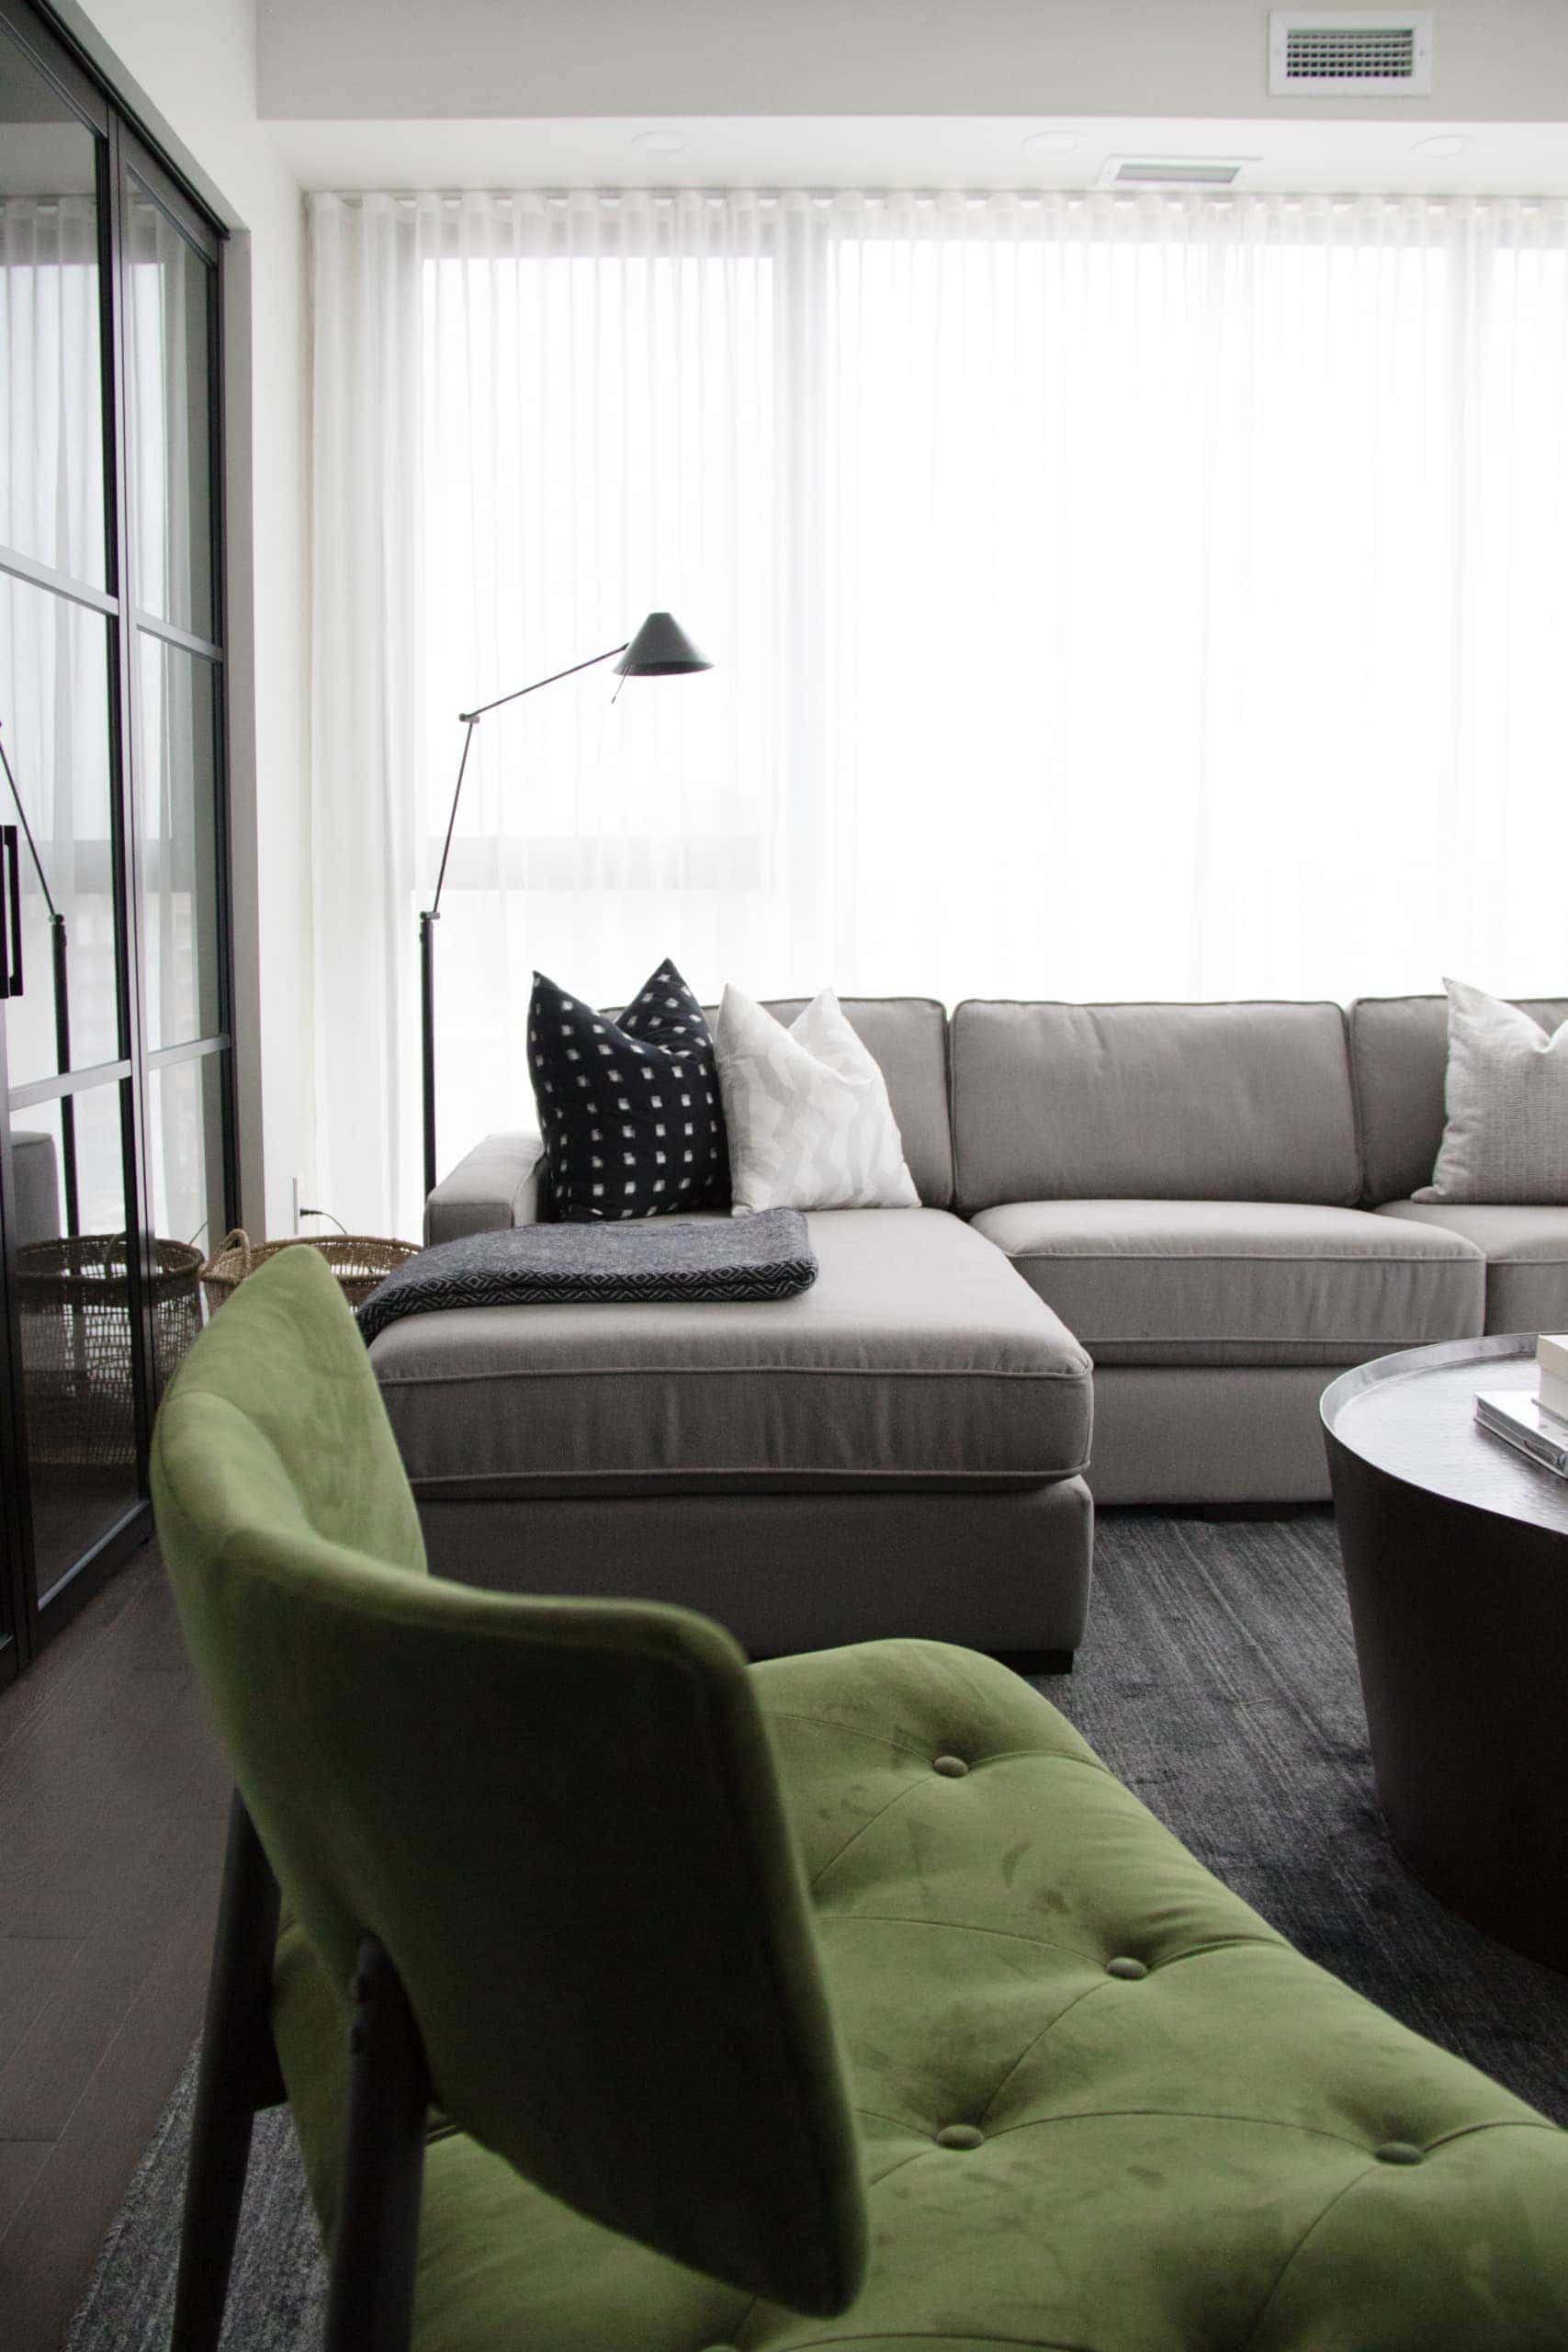 Modern living room with a green chair in the corner